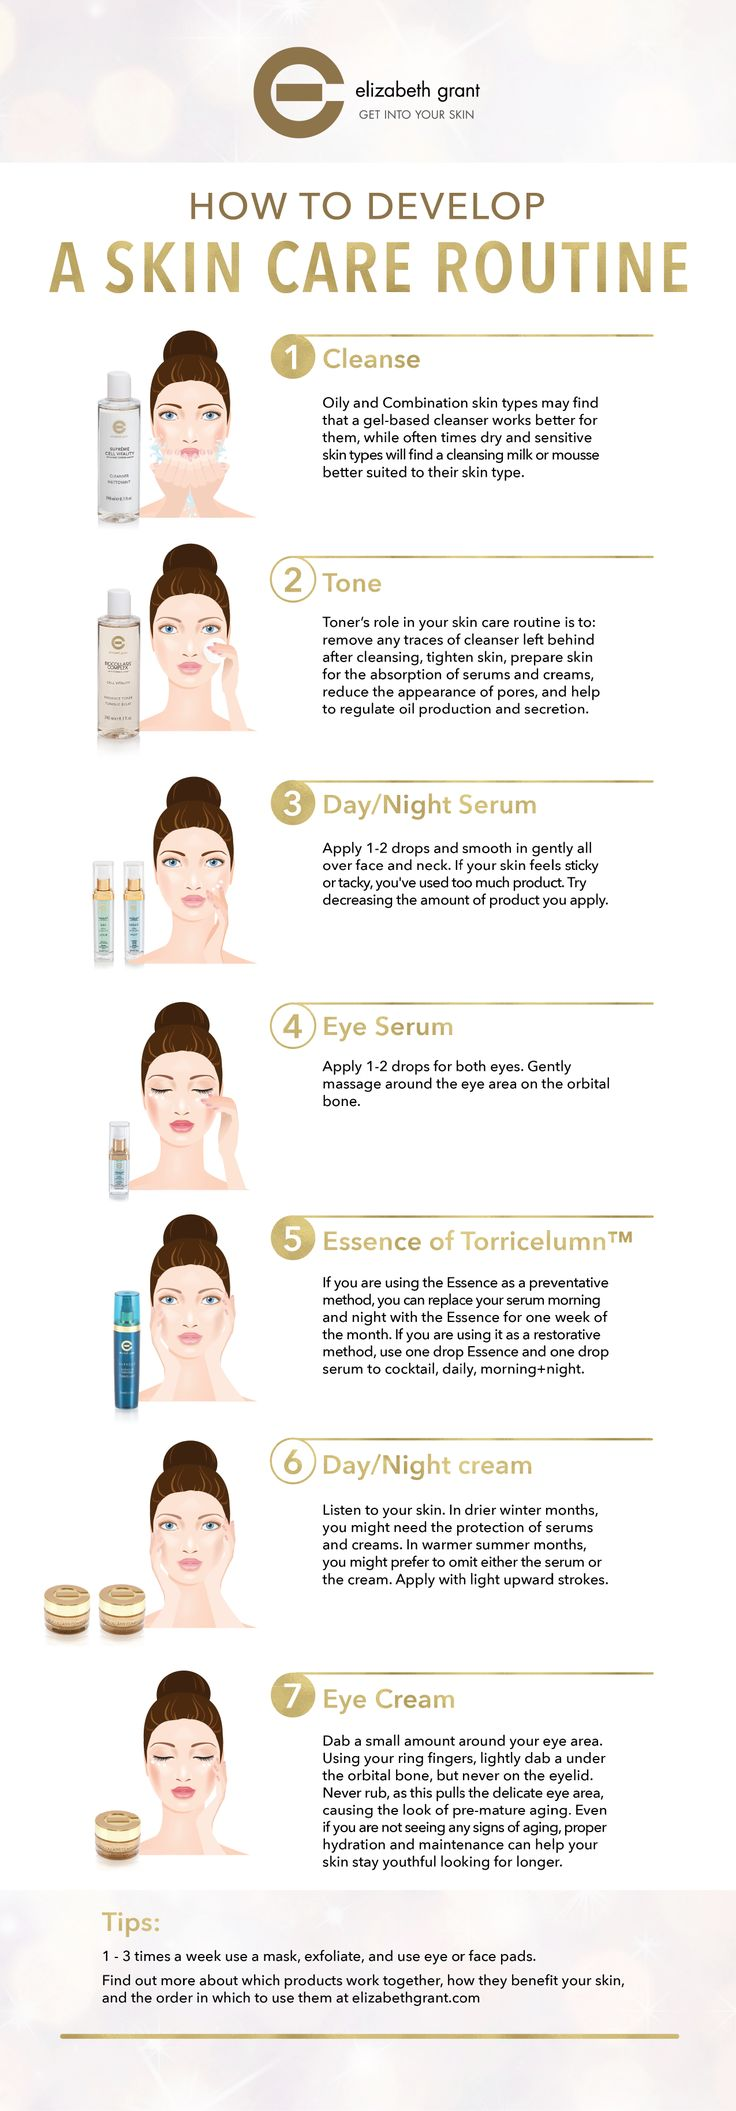 Do you know how to take care of your skin? Here is how you can develop a skin ca...